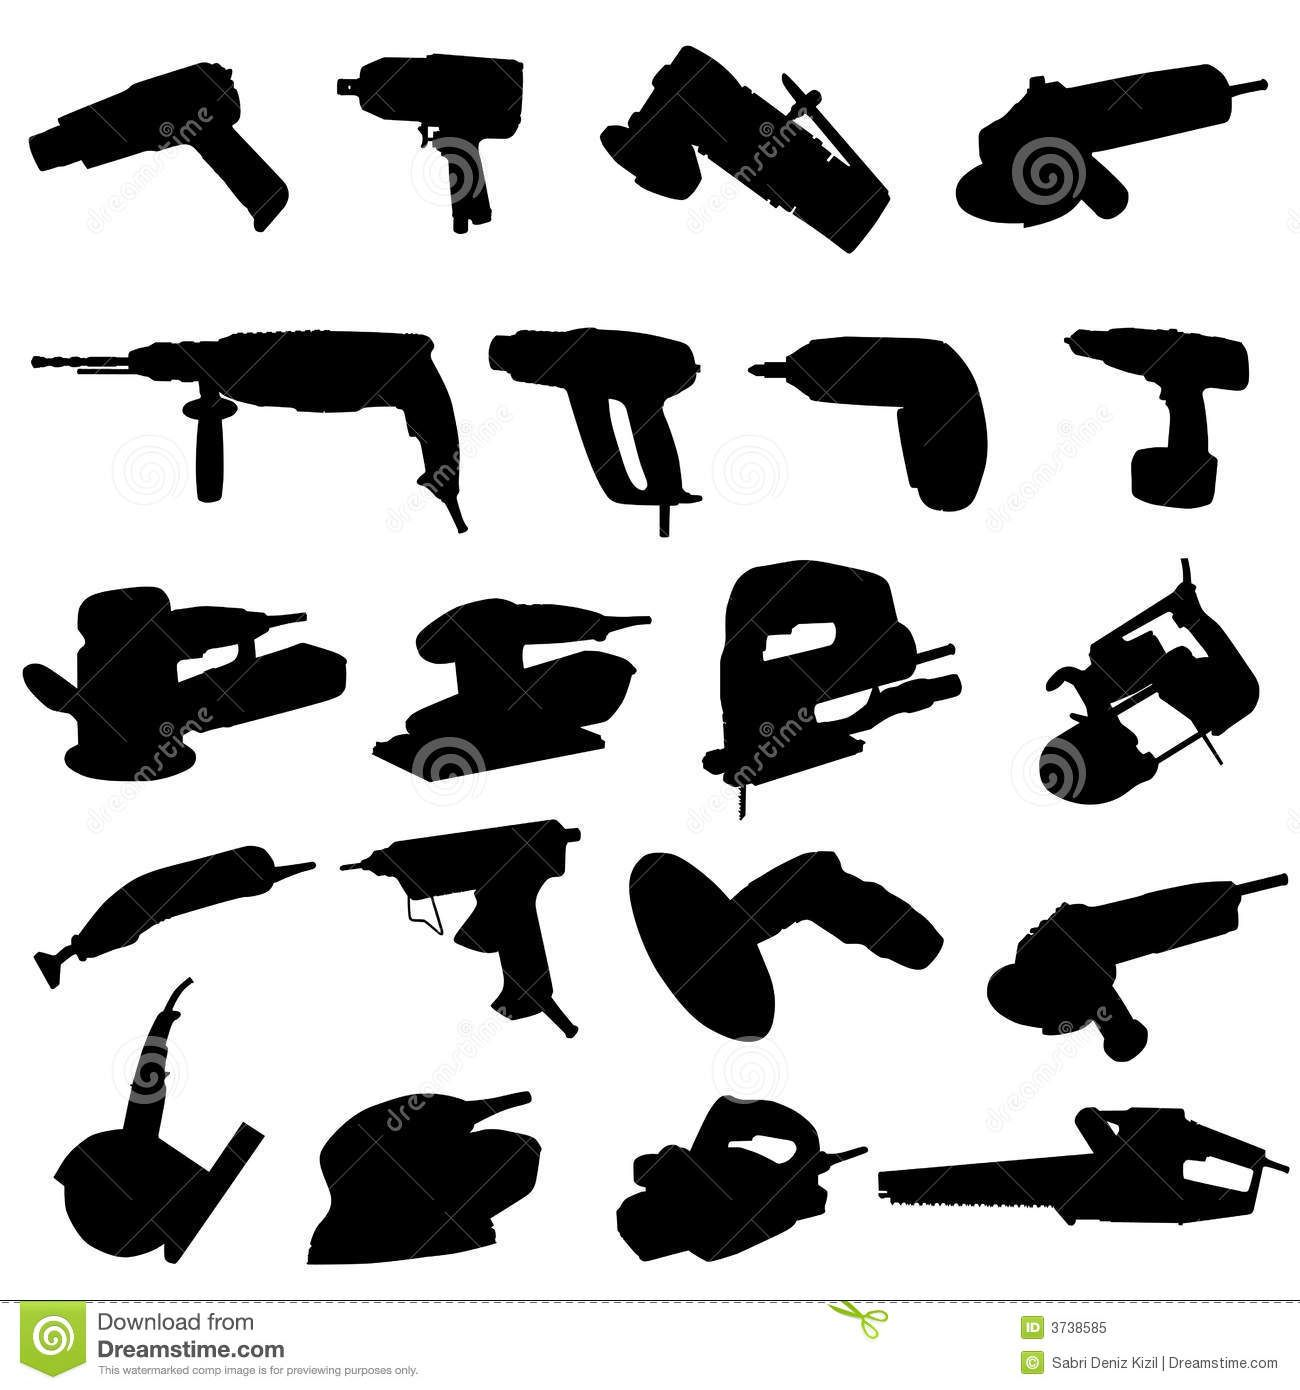 hand tool gallery - Google Search | Tool Silhouettes ...